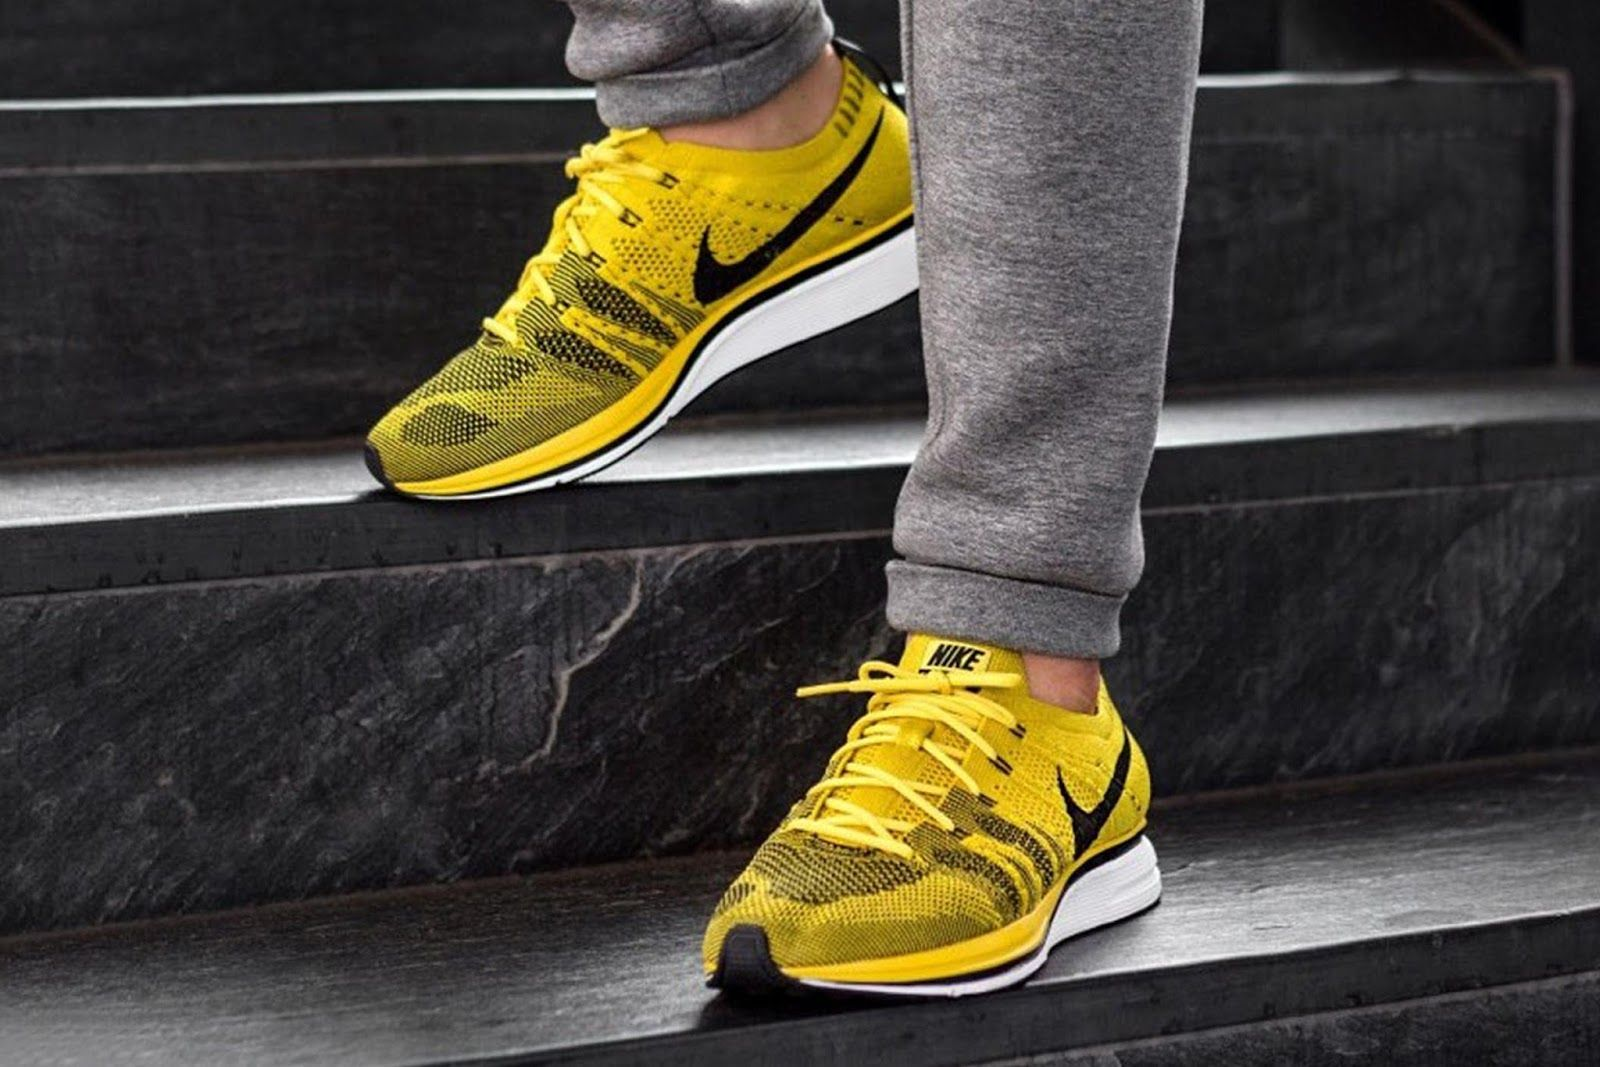 fbe135e4bae59c The Nike Flyknit Trainer Bright Citron comes dressed in a bright Yellow  Flyknit upper contrasted by the Black accents on the Swoosh